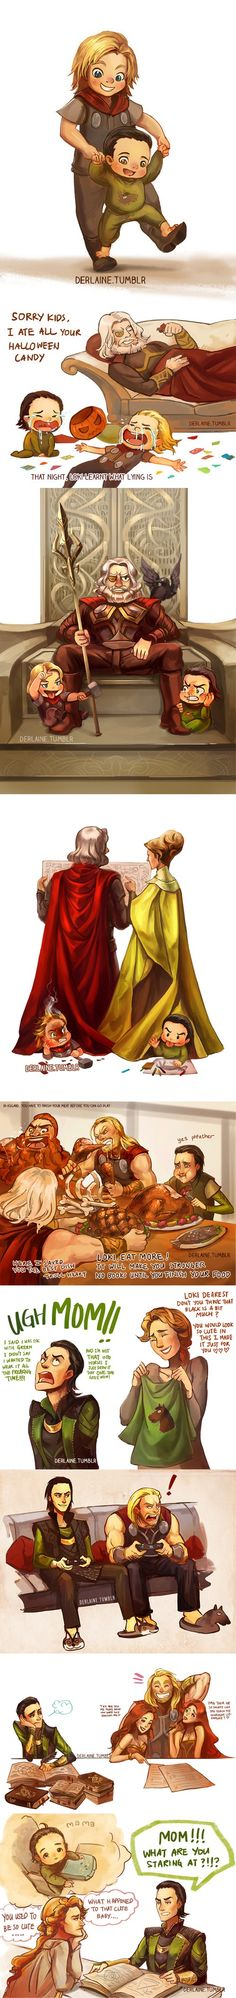 That's a lot of lip from you, young Loki.  The Frigga I imagine takes no shit from her kids...even though the movies like to prove me wrong.  xD  On the other side, Thor and Loki are such perfect brothers!